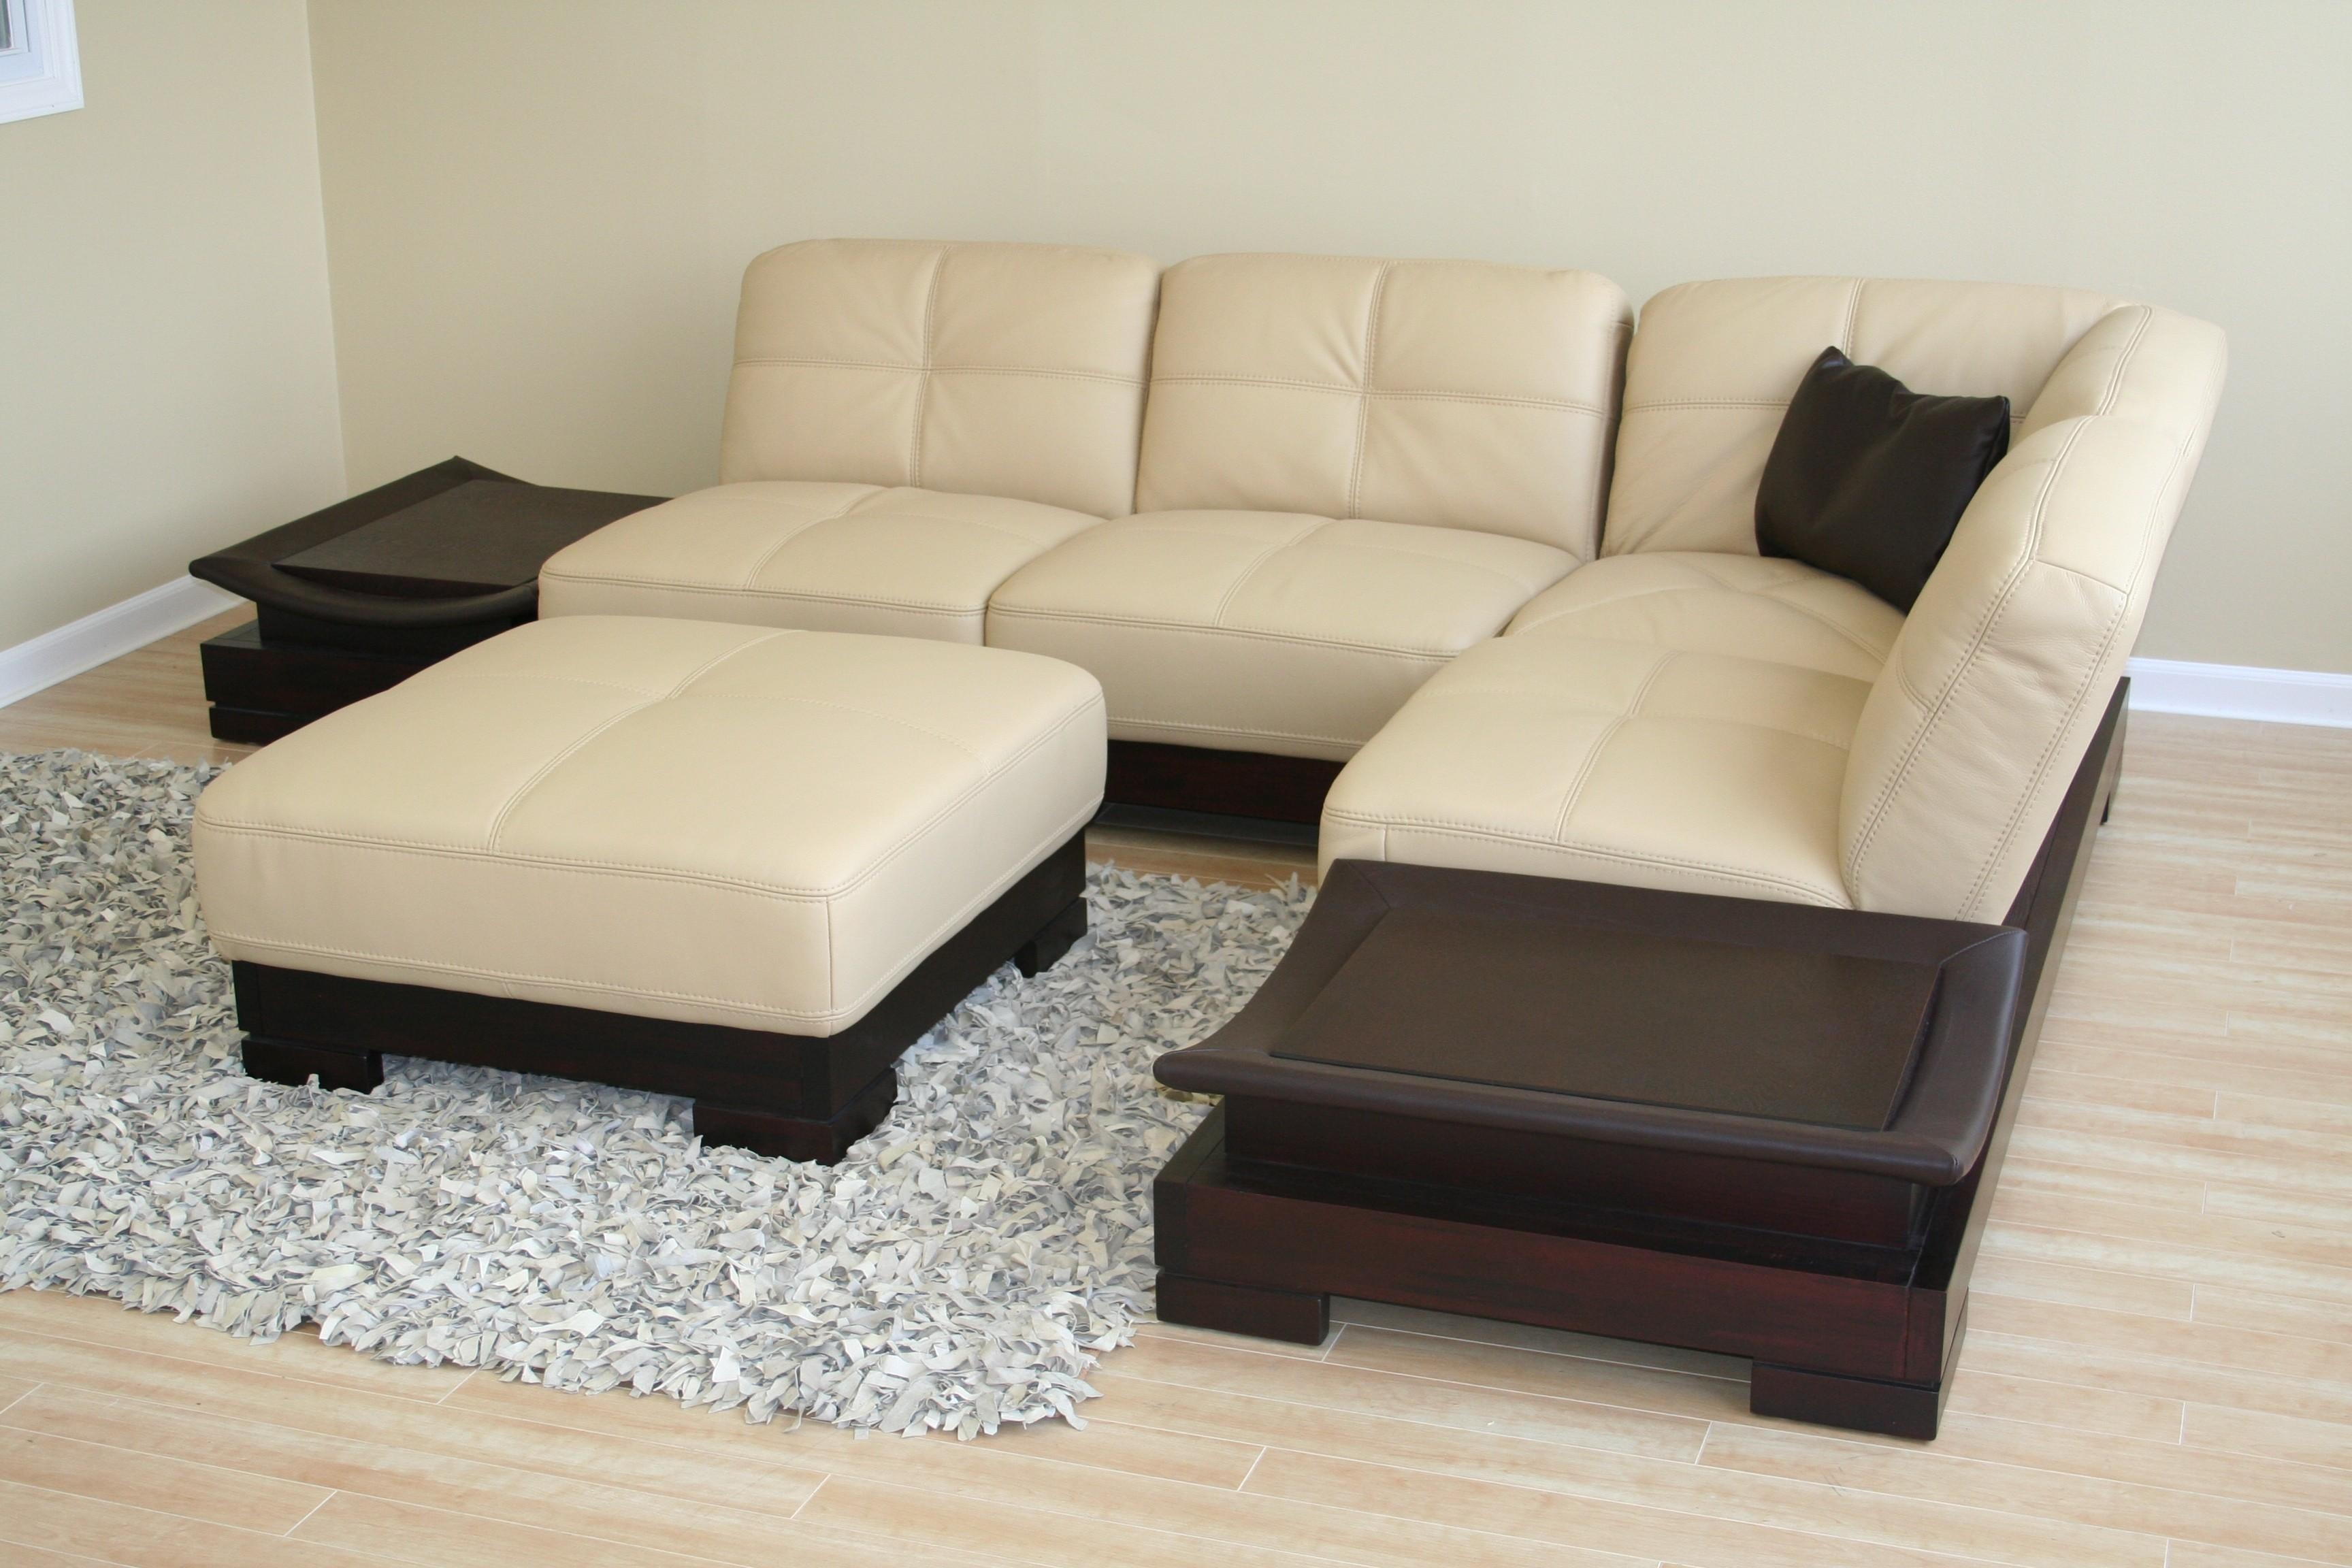 Small Scale Sofa With Chaise | Tehranmix Decoration In Small Scale Sofa Bed (View 14 of 20)